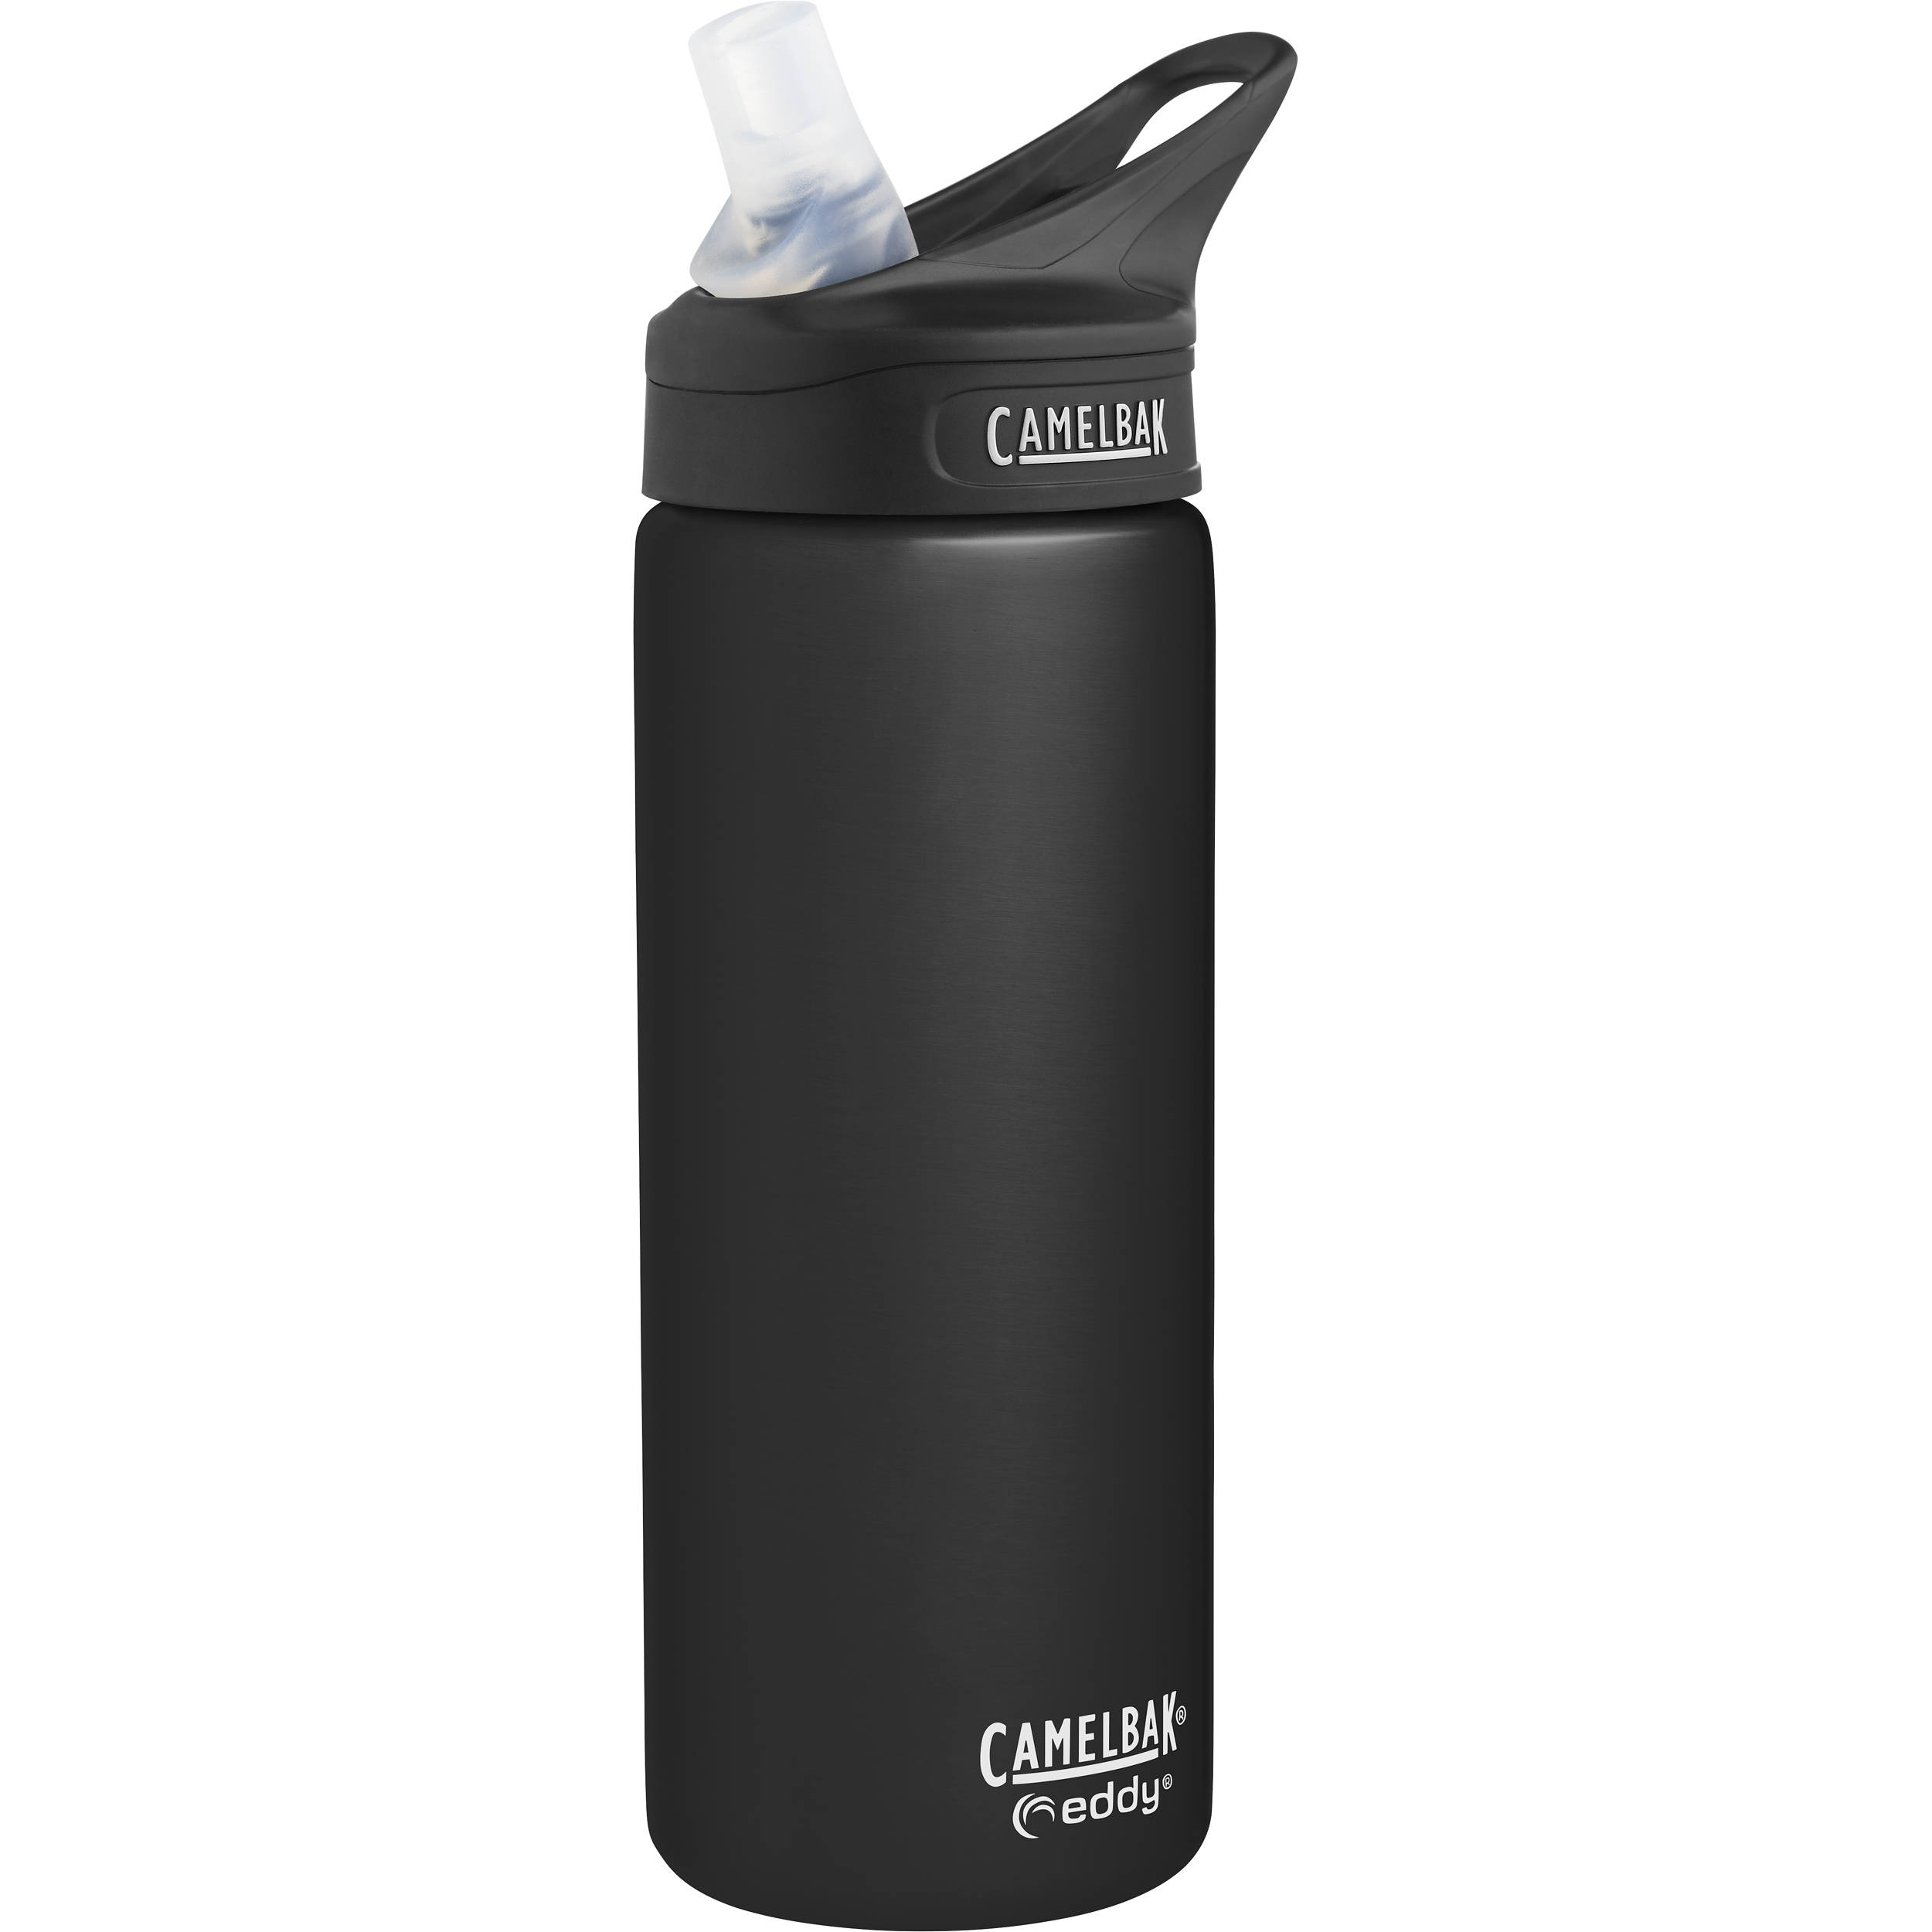 Camelbak Eddy Vacuum Insulated Stainless Steel Water 53891 B Amp H